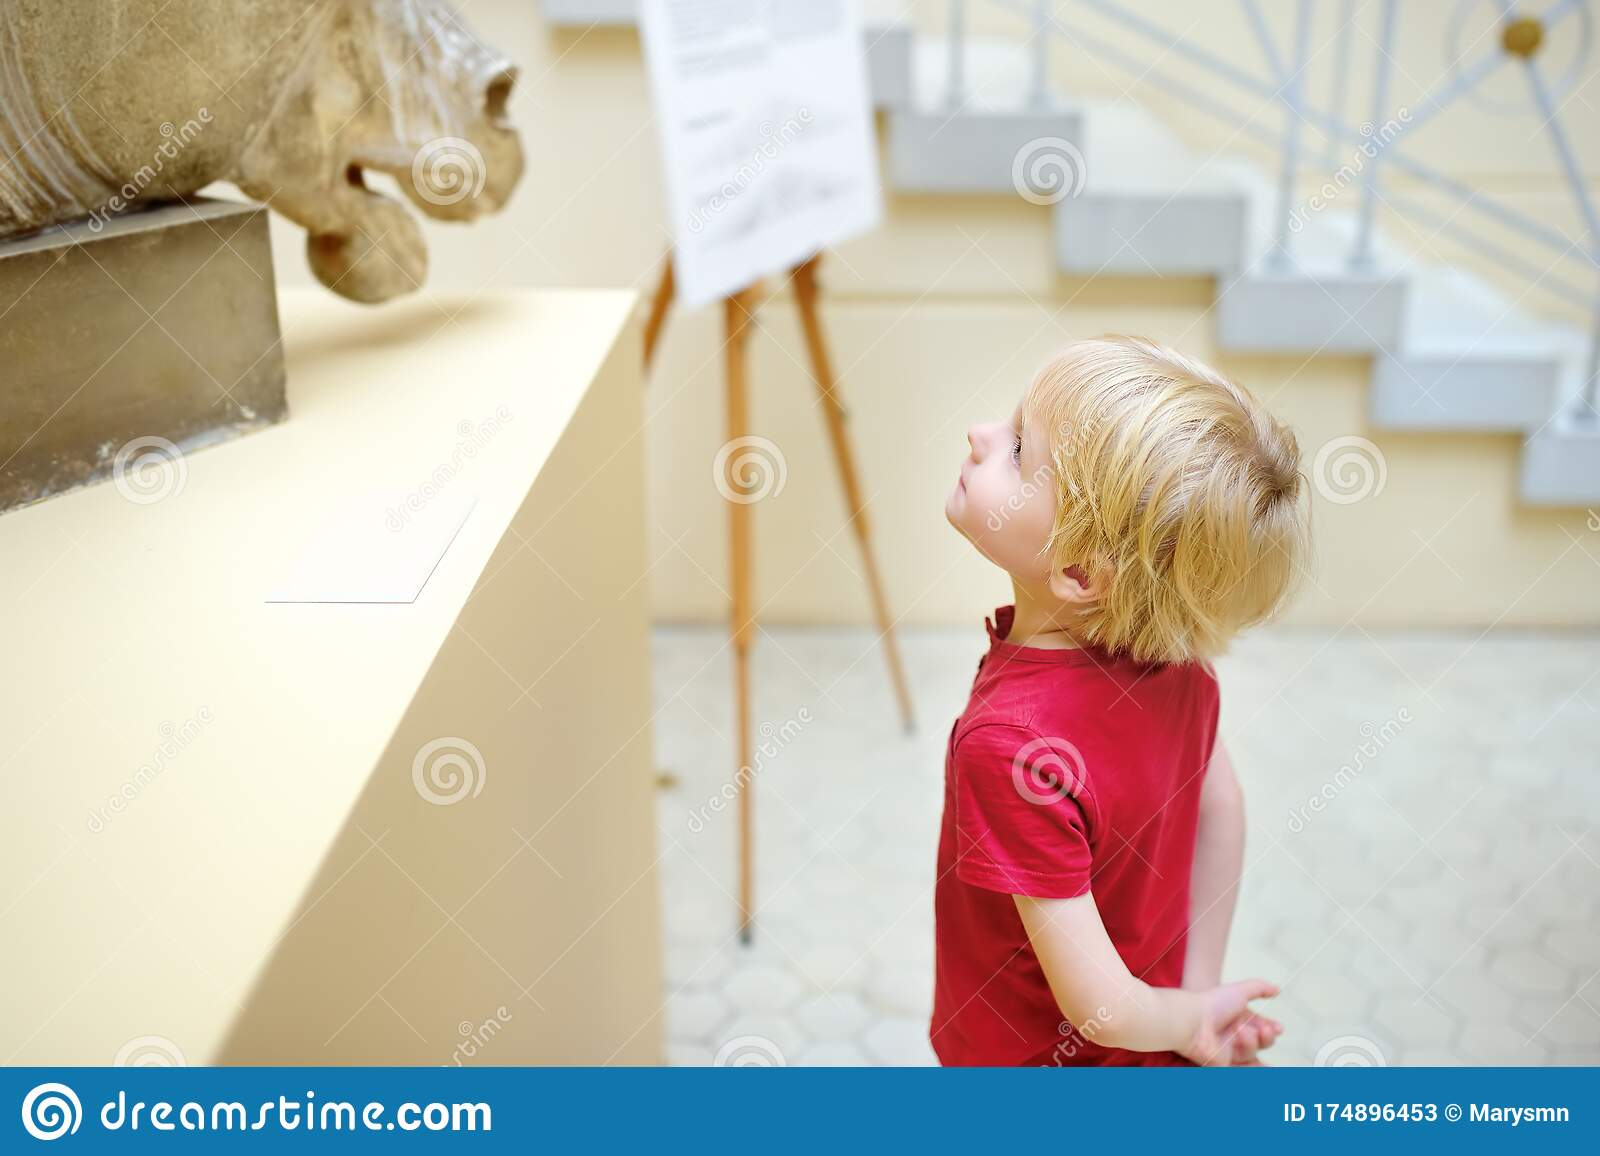 Little Boy Looking At Sculpture Of Horse S Head Stock Image Image Of Leisure Elementary 174896453